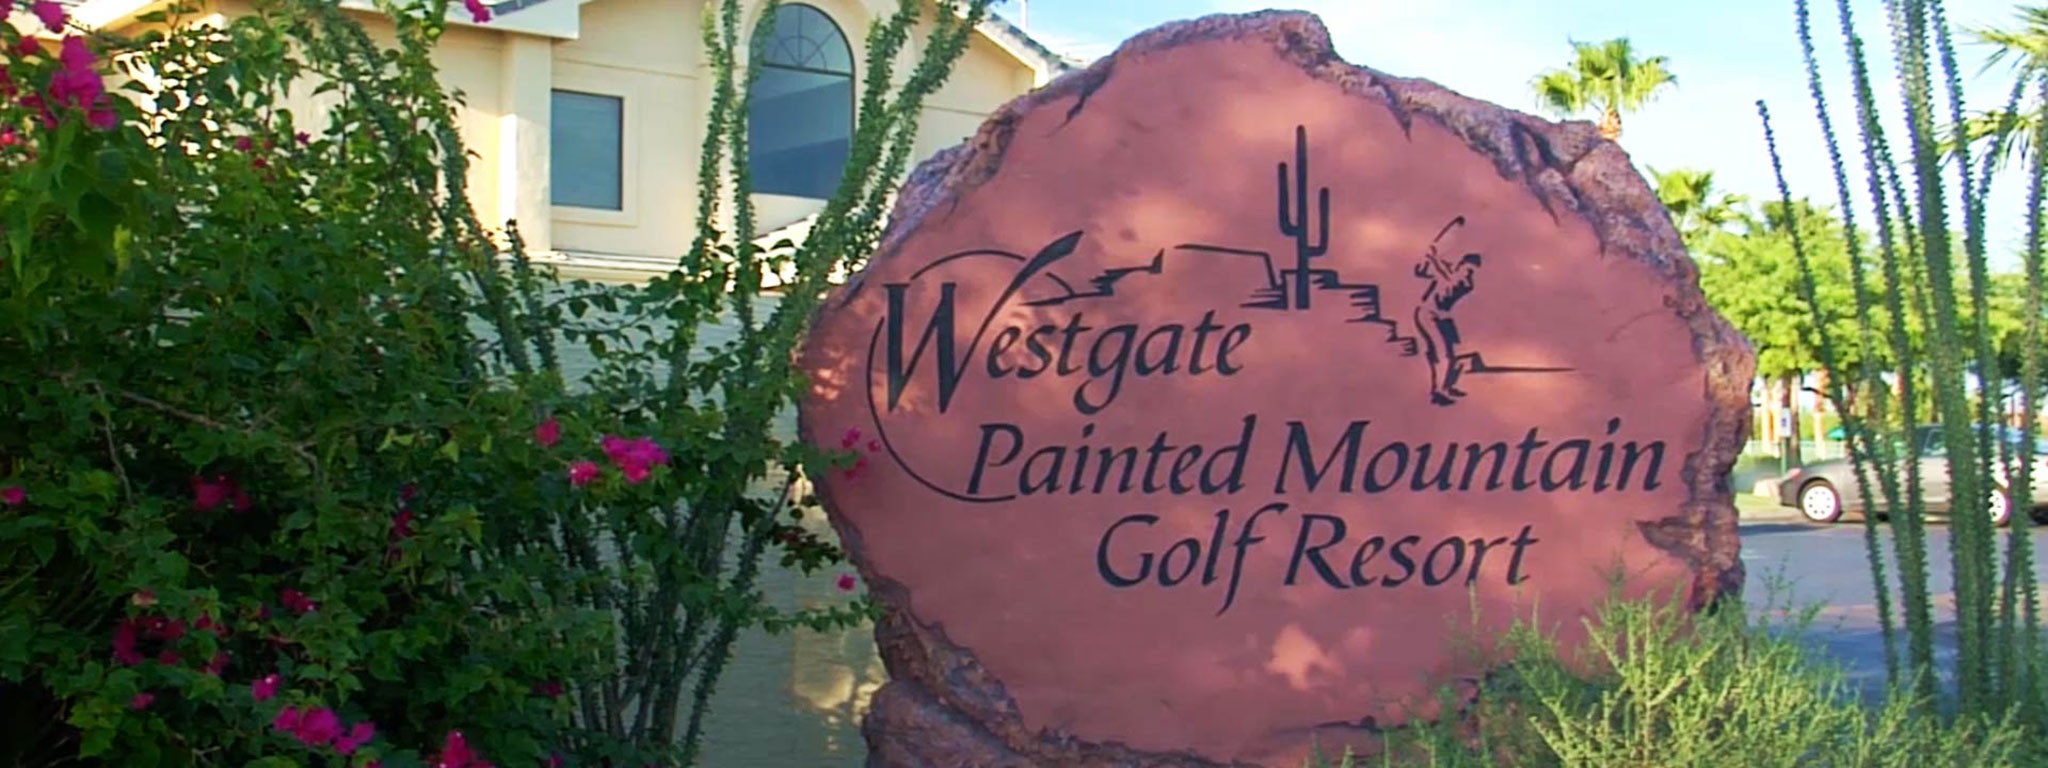 Located in Mesa, Arizona - just outside of Phoenix - Westgate Painted Mountain Golf Resort provides guests all the comforts of a fully furnished home, all within minutes of area attractions, restaurants and a championship golf course at the best Arizona golf resort Mesa has to offer.